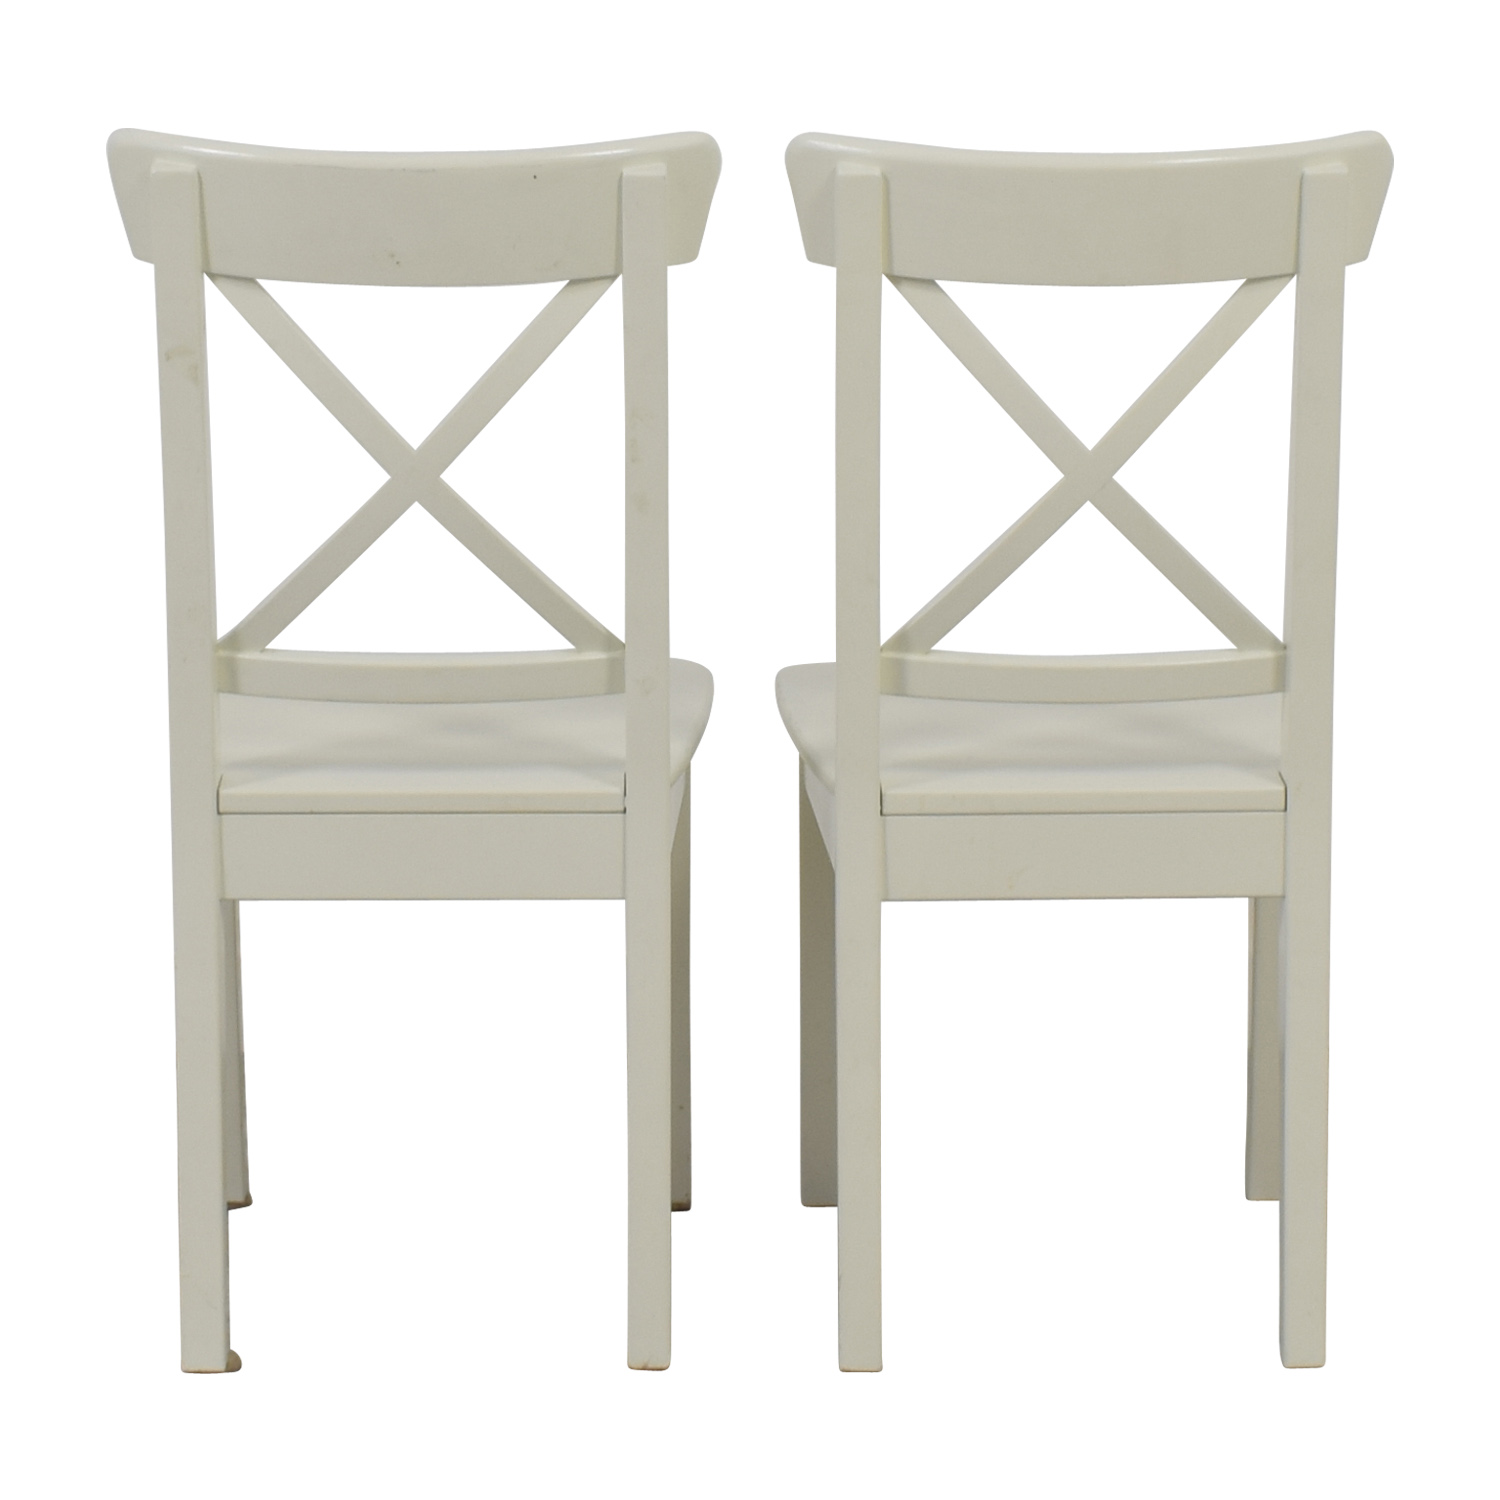 IKEA Ingolf Chairs / Home Office Chairs